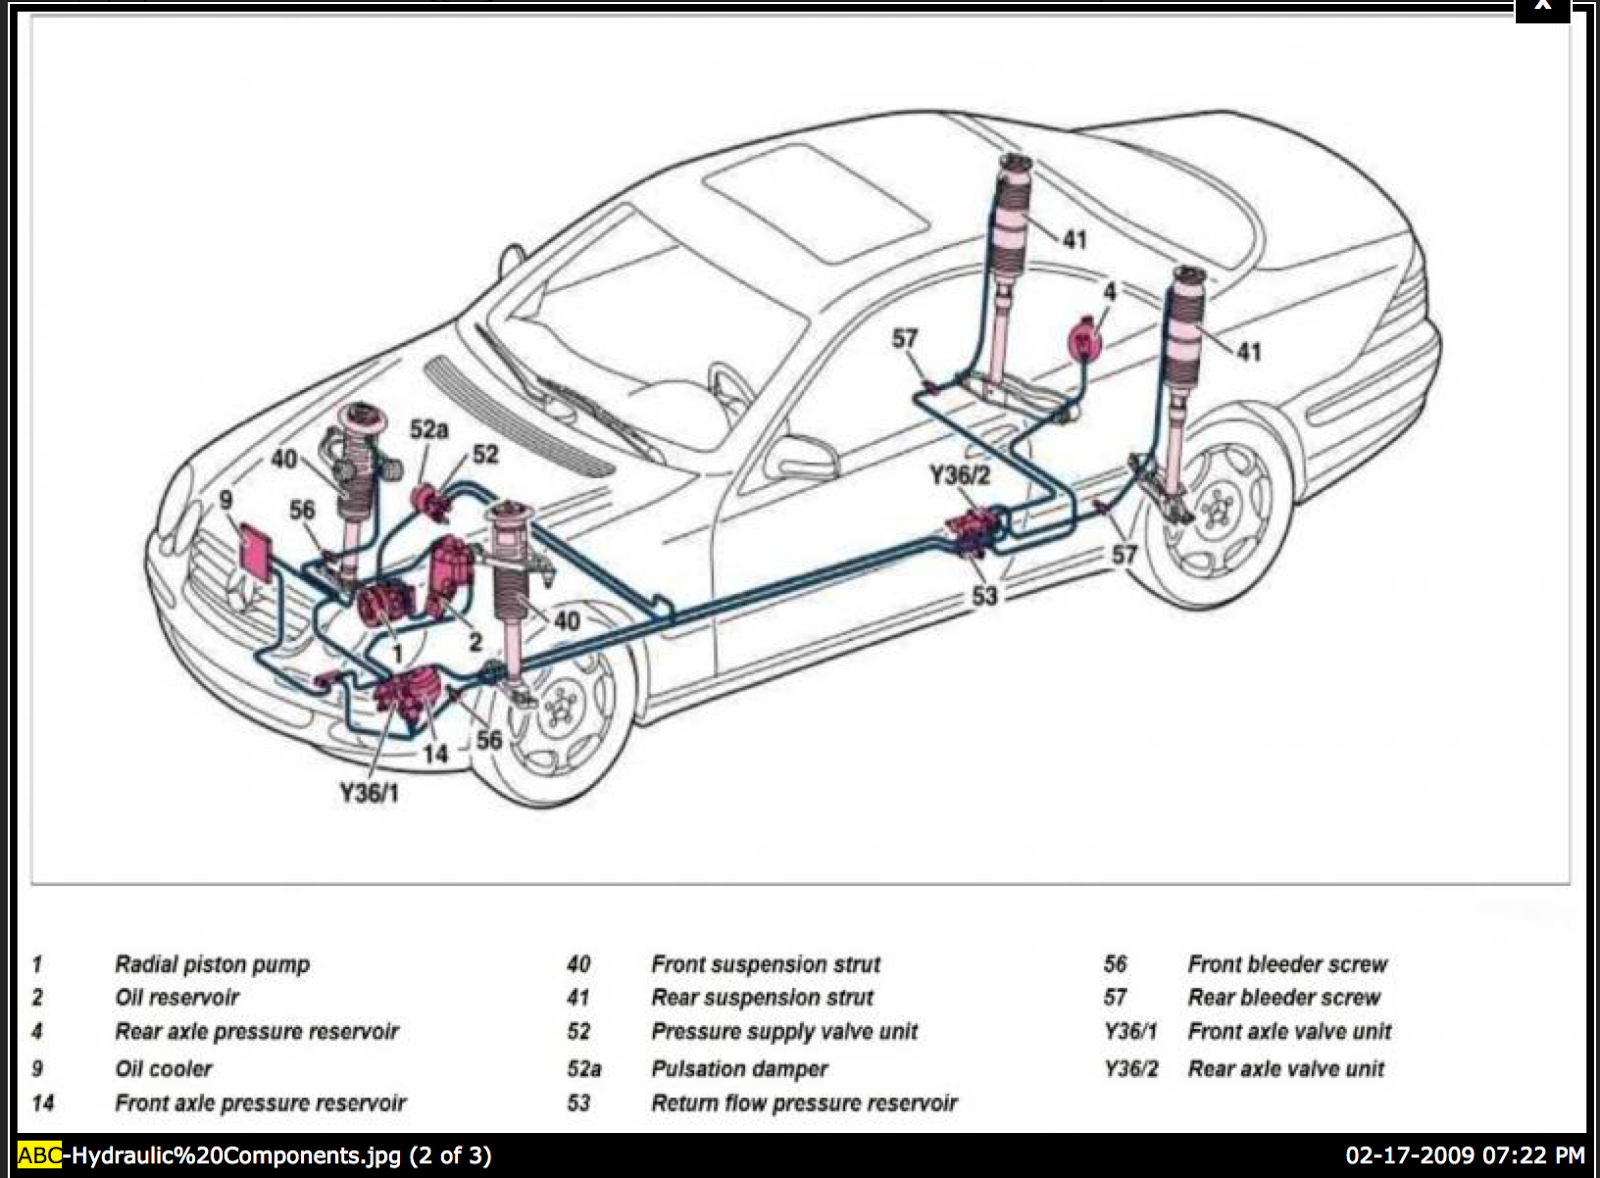 Mercedes Sl500 Wiring Diagram Electron Dot Boron Rear 2003 Fuse And Relay Box Location Data Benz Abc System Troubleshooting Guide